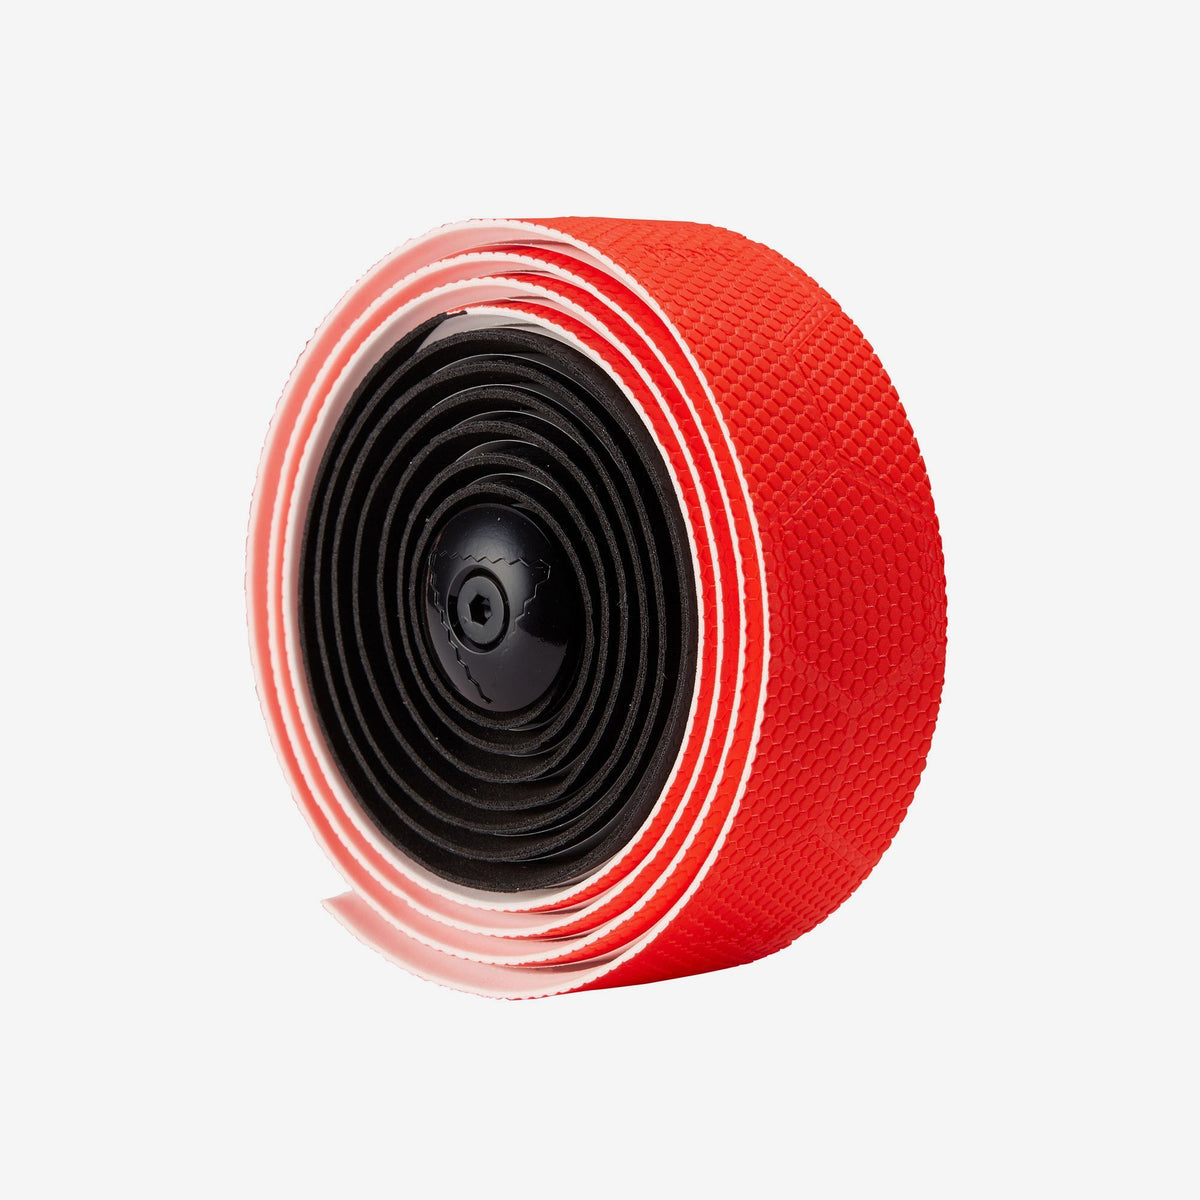 Fabric Hex Duo Black/Red Bar tape - Cycles Galleria Melbourne